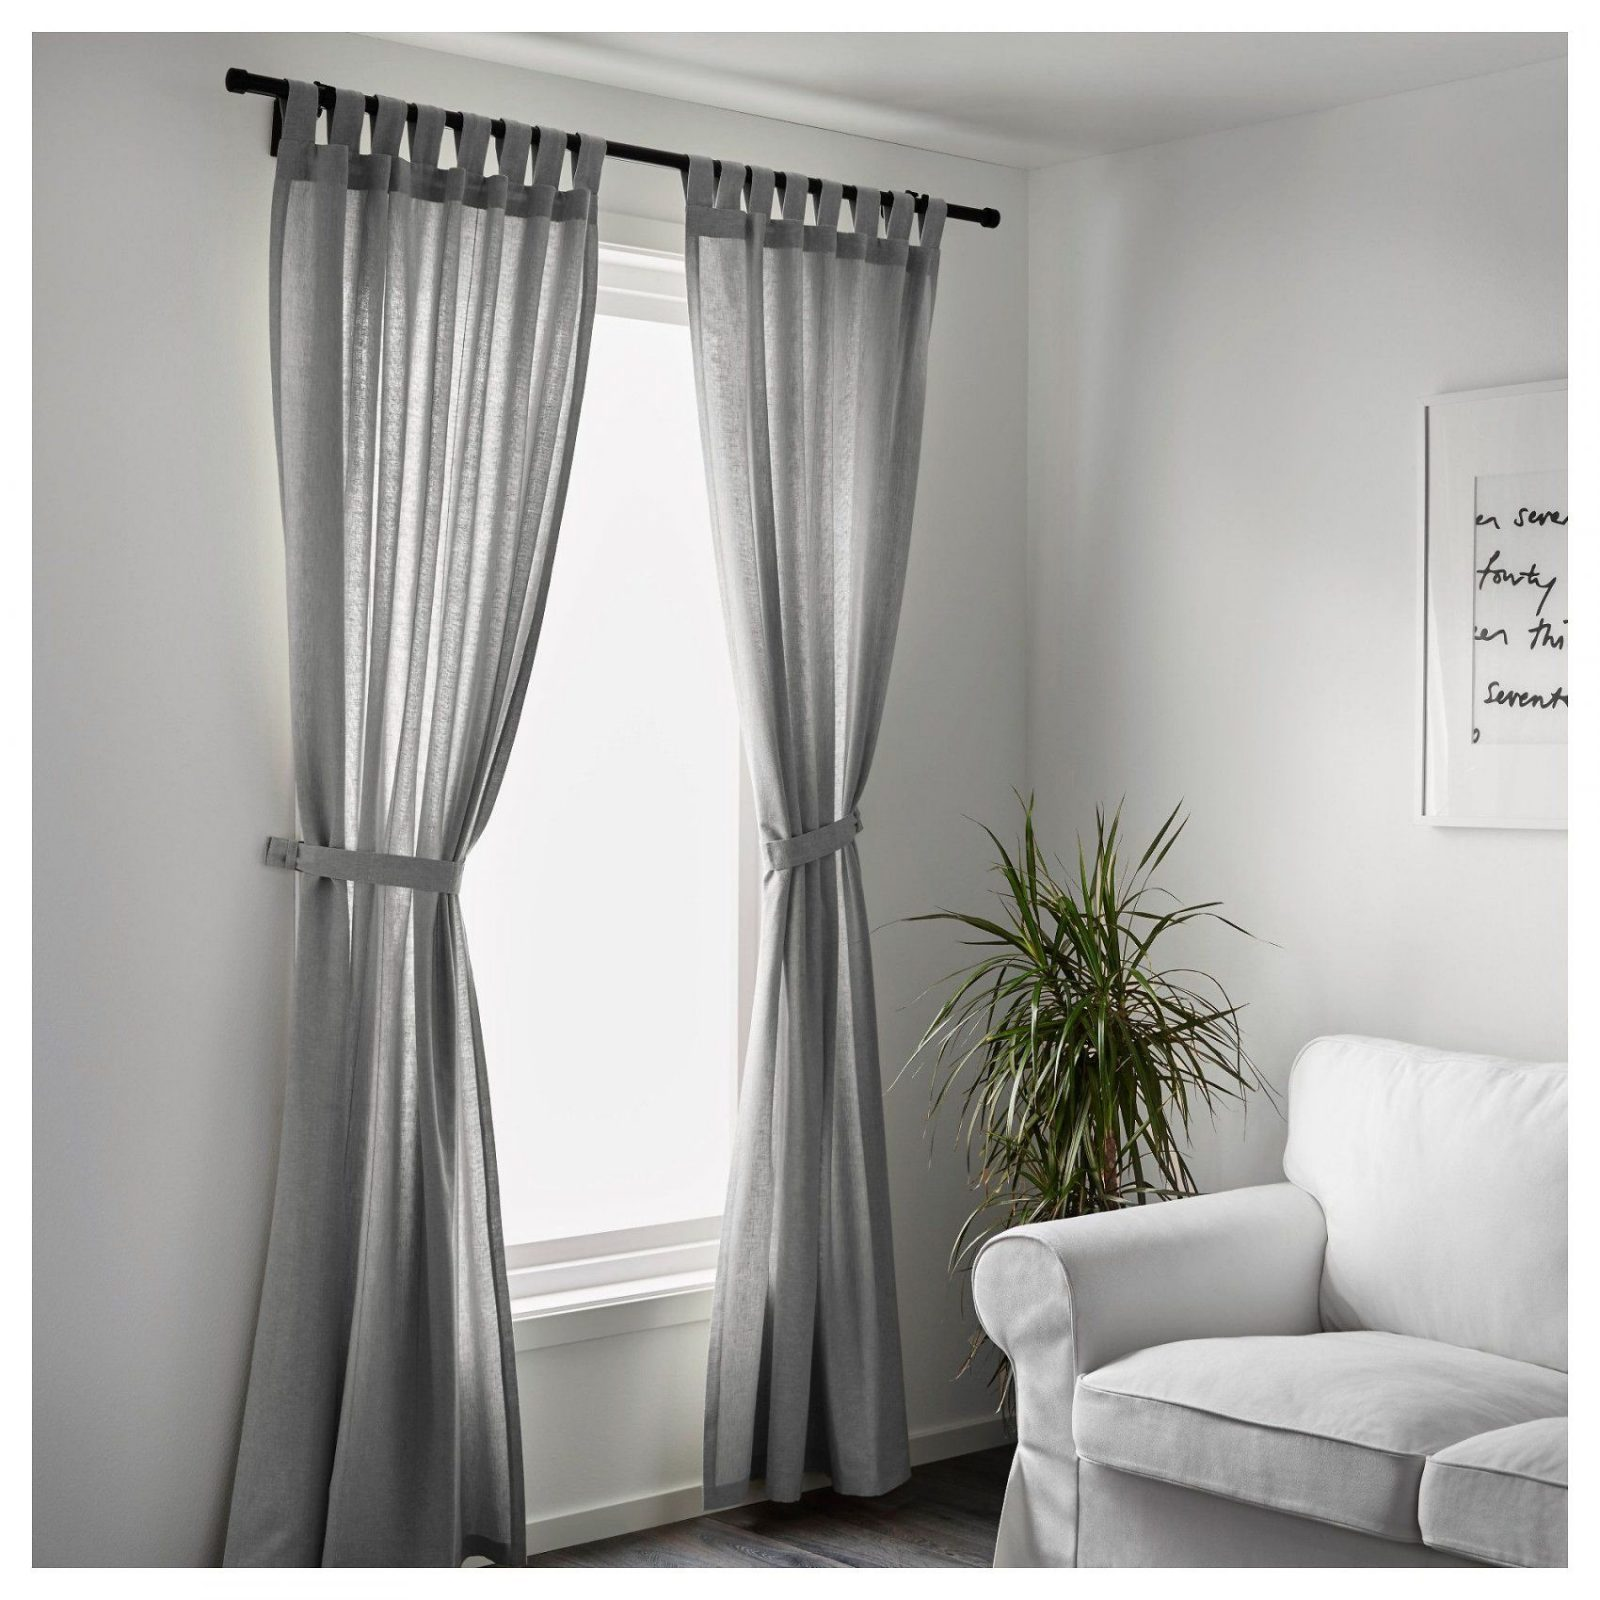 Lenda Curtains With Tiebacks 1 Pair Grey 140X250 Cm  Spaces von Gardinen Raffhalter Ikea Bild